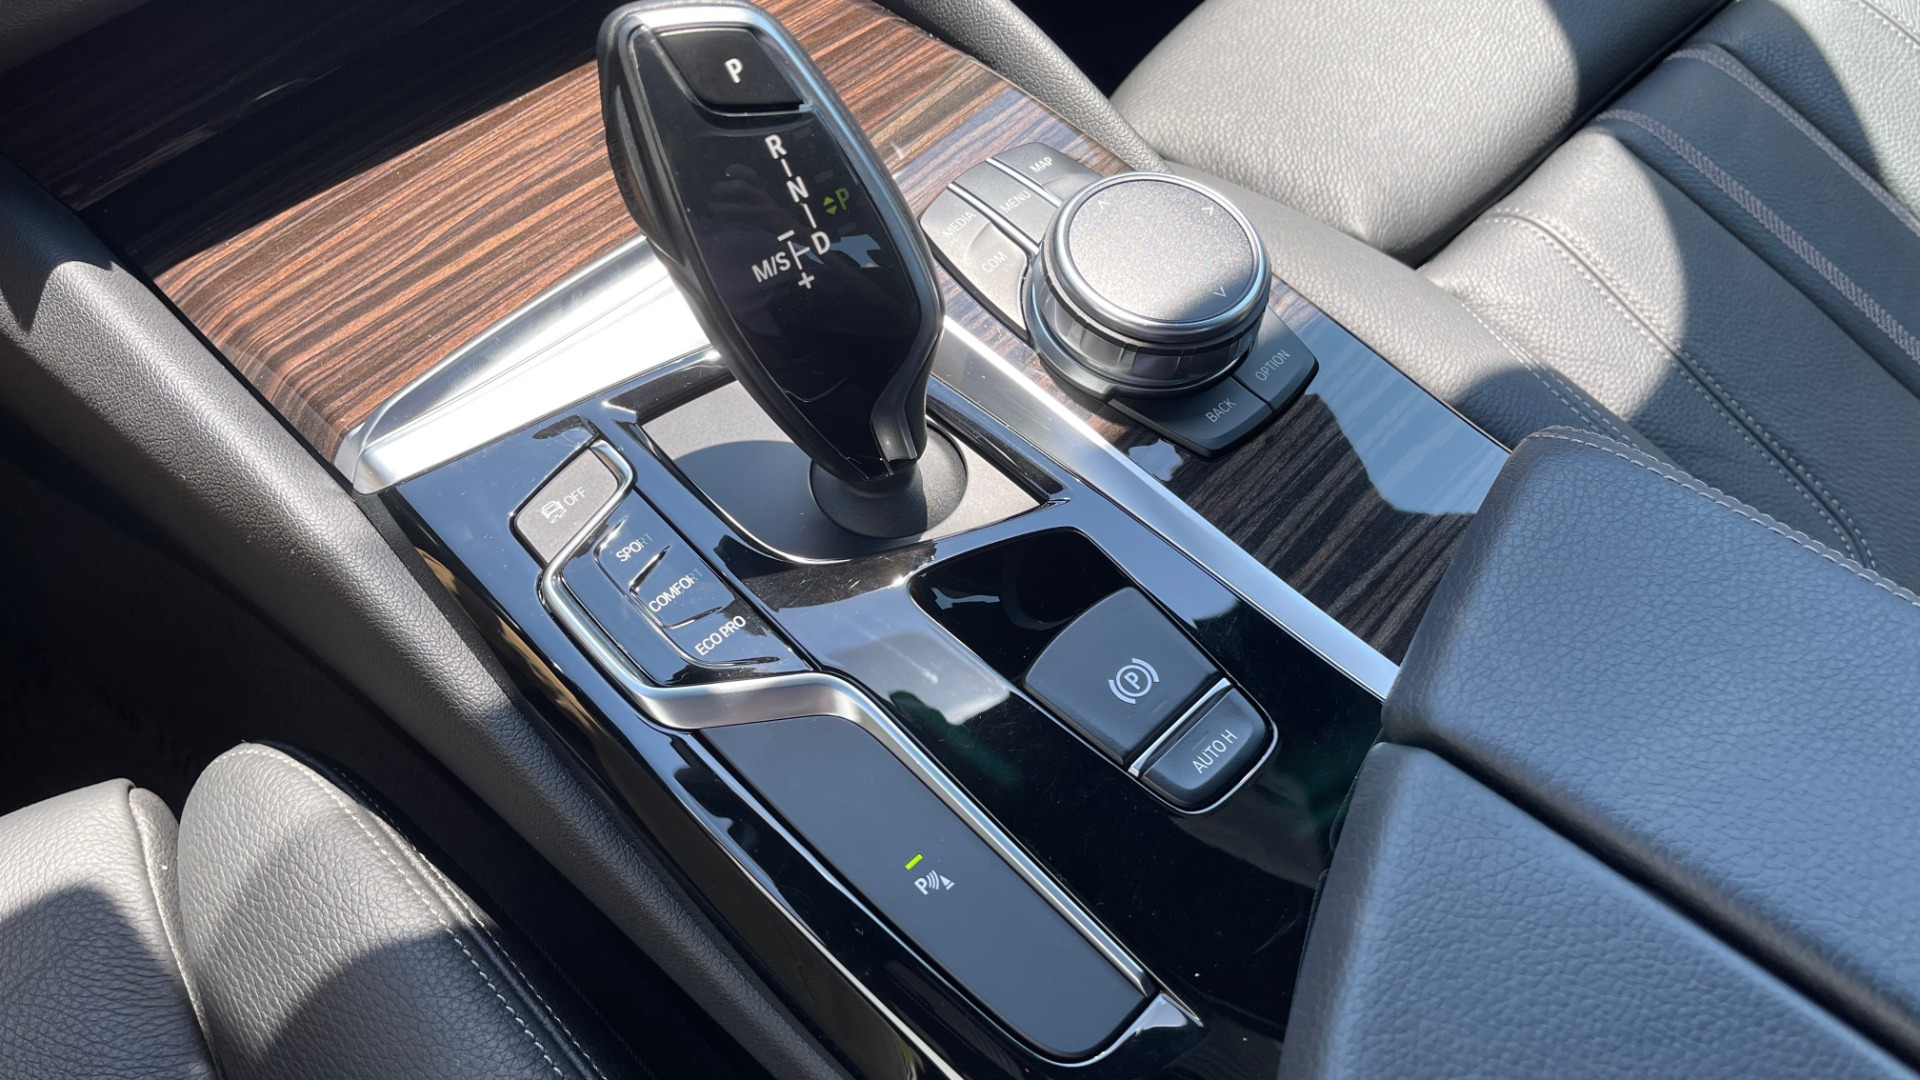 Used 2018 BMW 5 SERIES 540IXDRIVE PREMIUM / PARK ASSIST / KEYLESS ENTRY / SUNROOF / REARVIEW for sale $42,995 at Formula Imports in Charlotte NC 28227 51